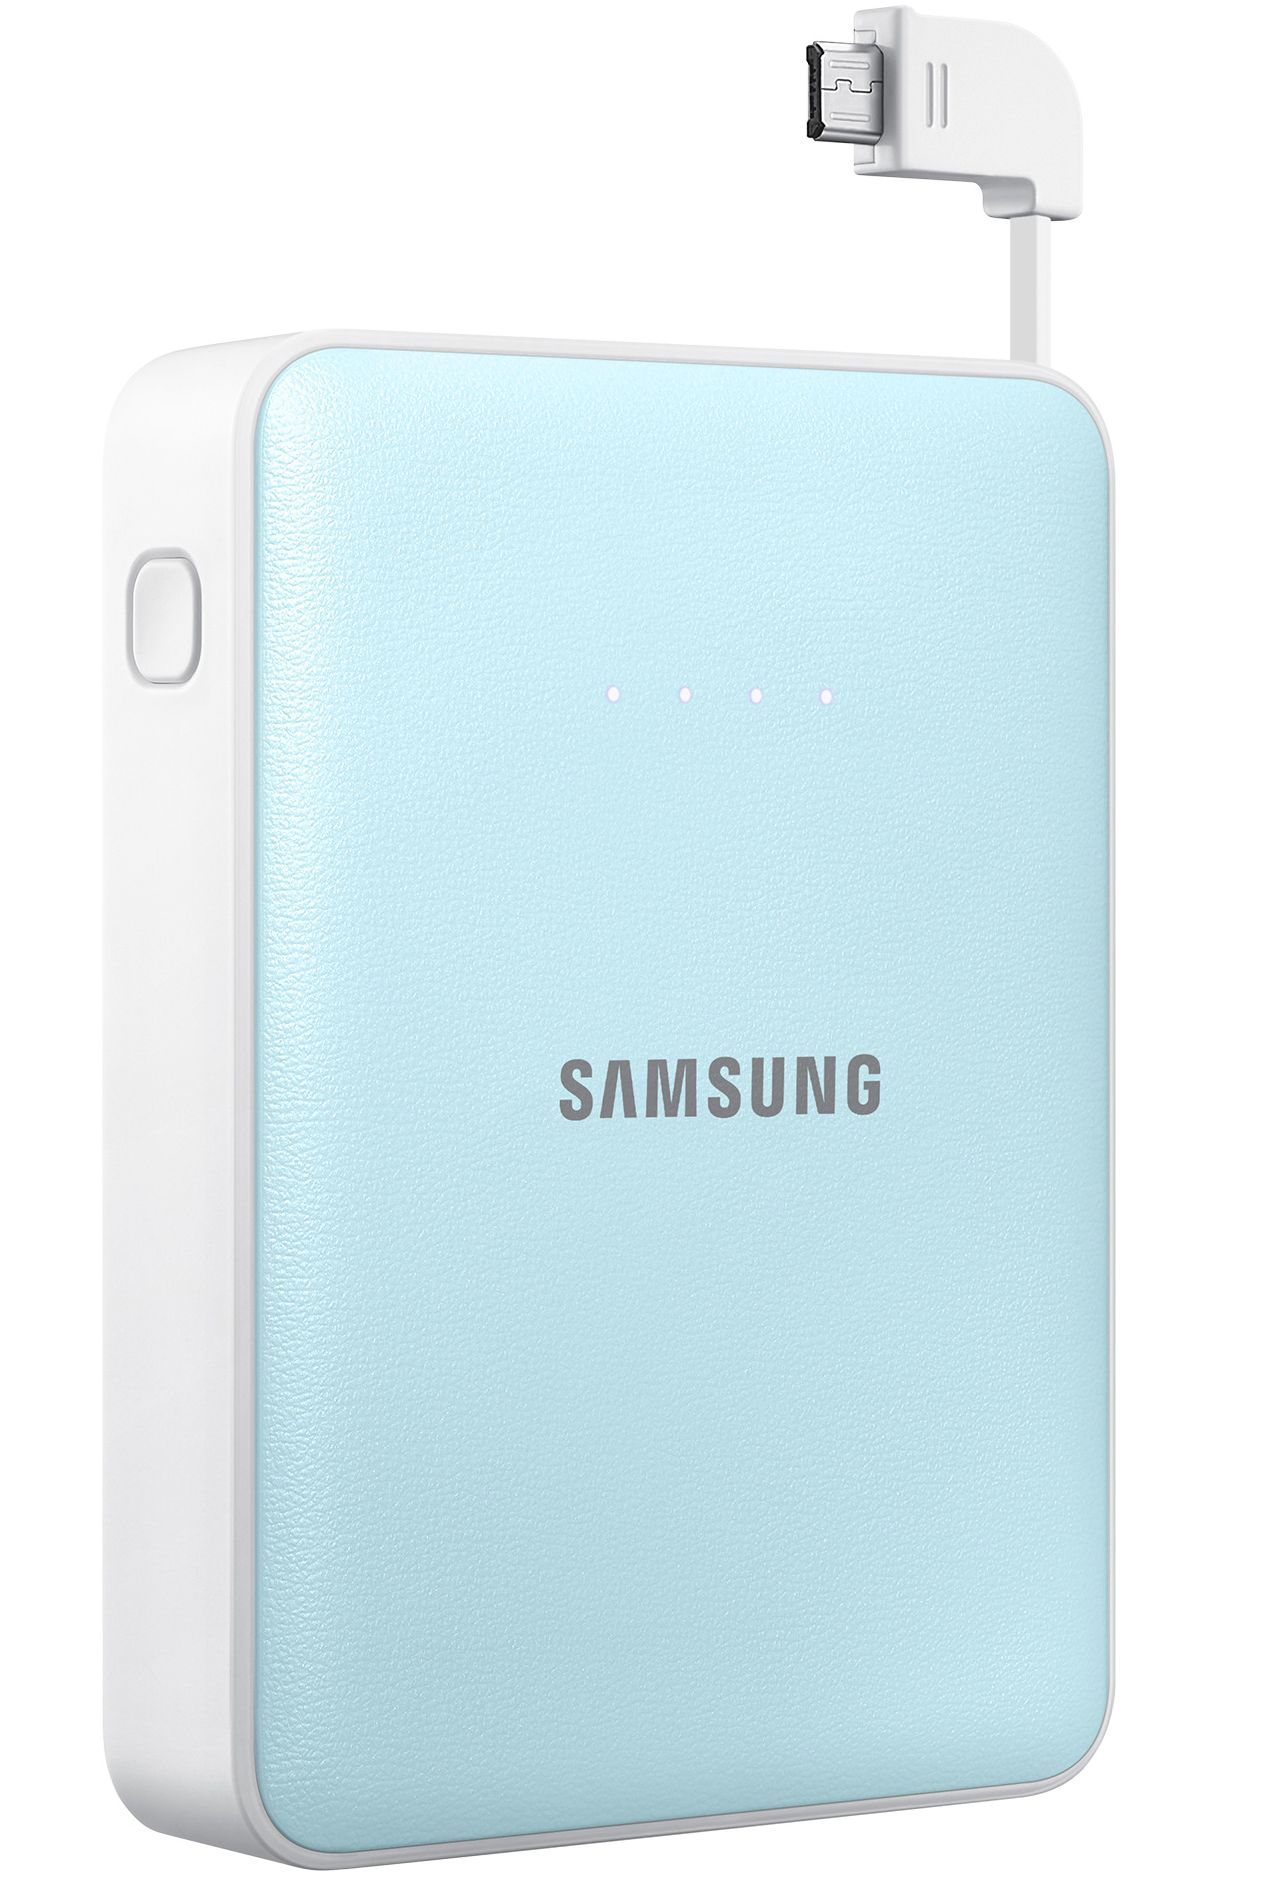 bc4cac2a1d6 Power Bank Samsung, blue | Brand promotional items | Samsung, Blue